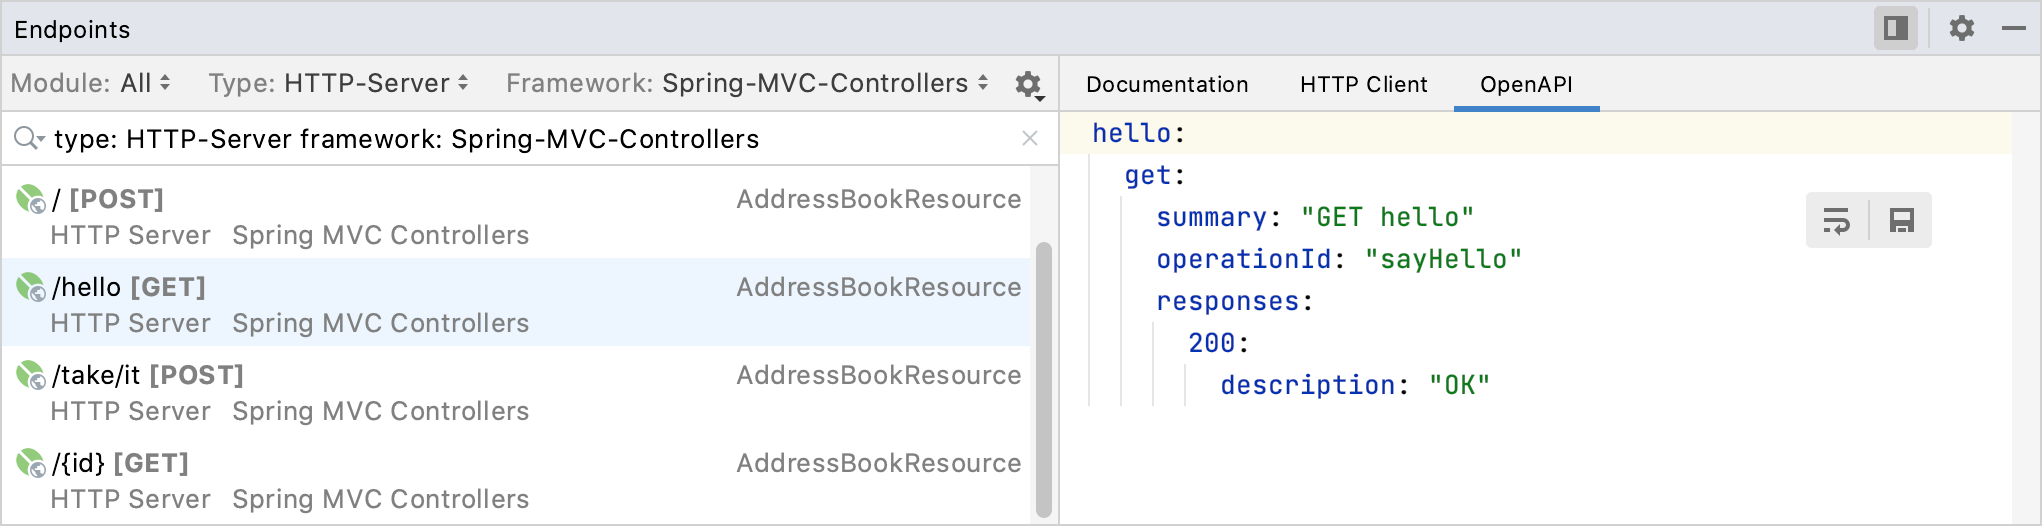 Endpoints tool window: OpenAPI tab